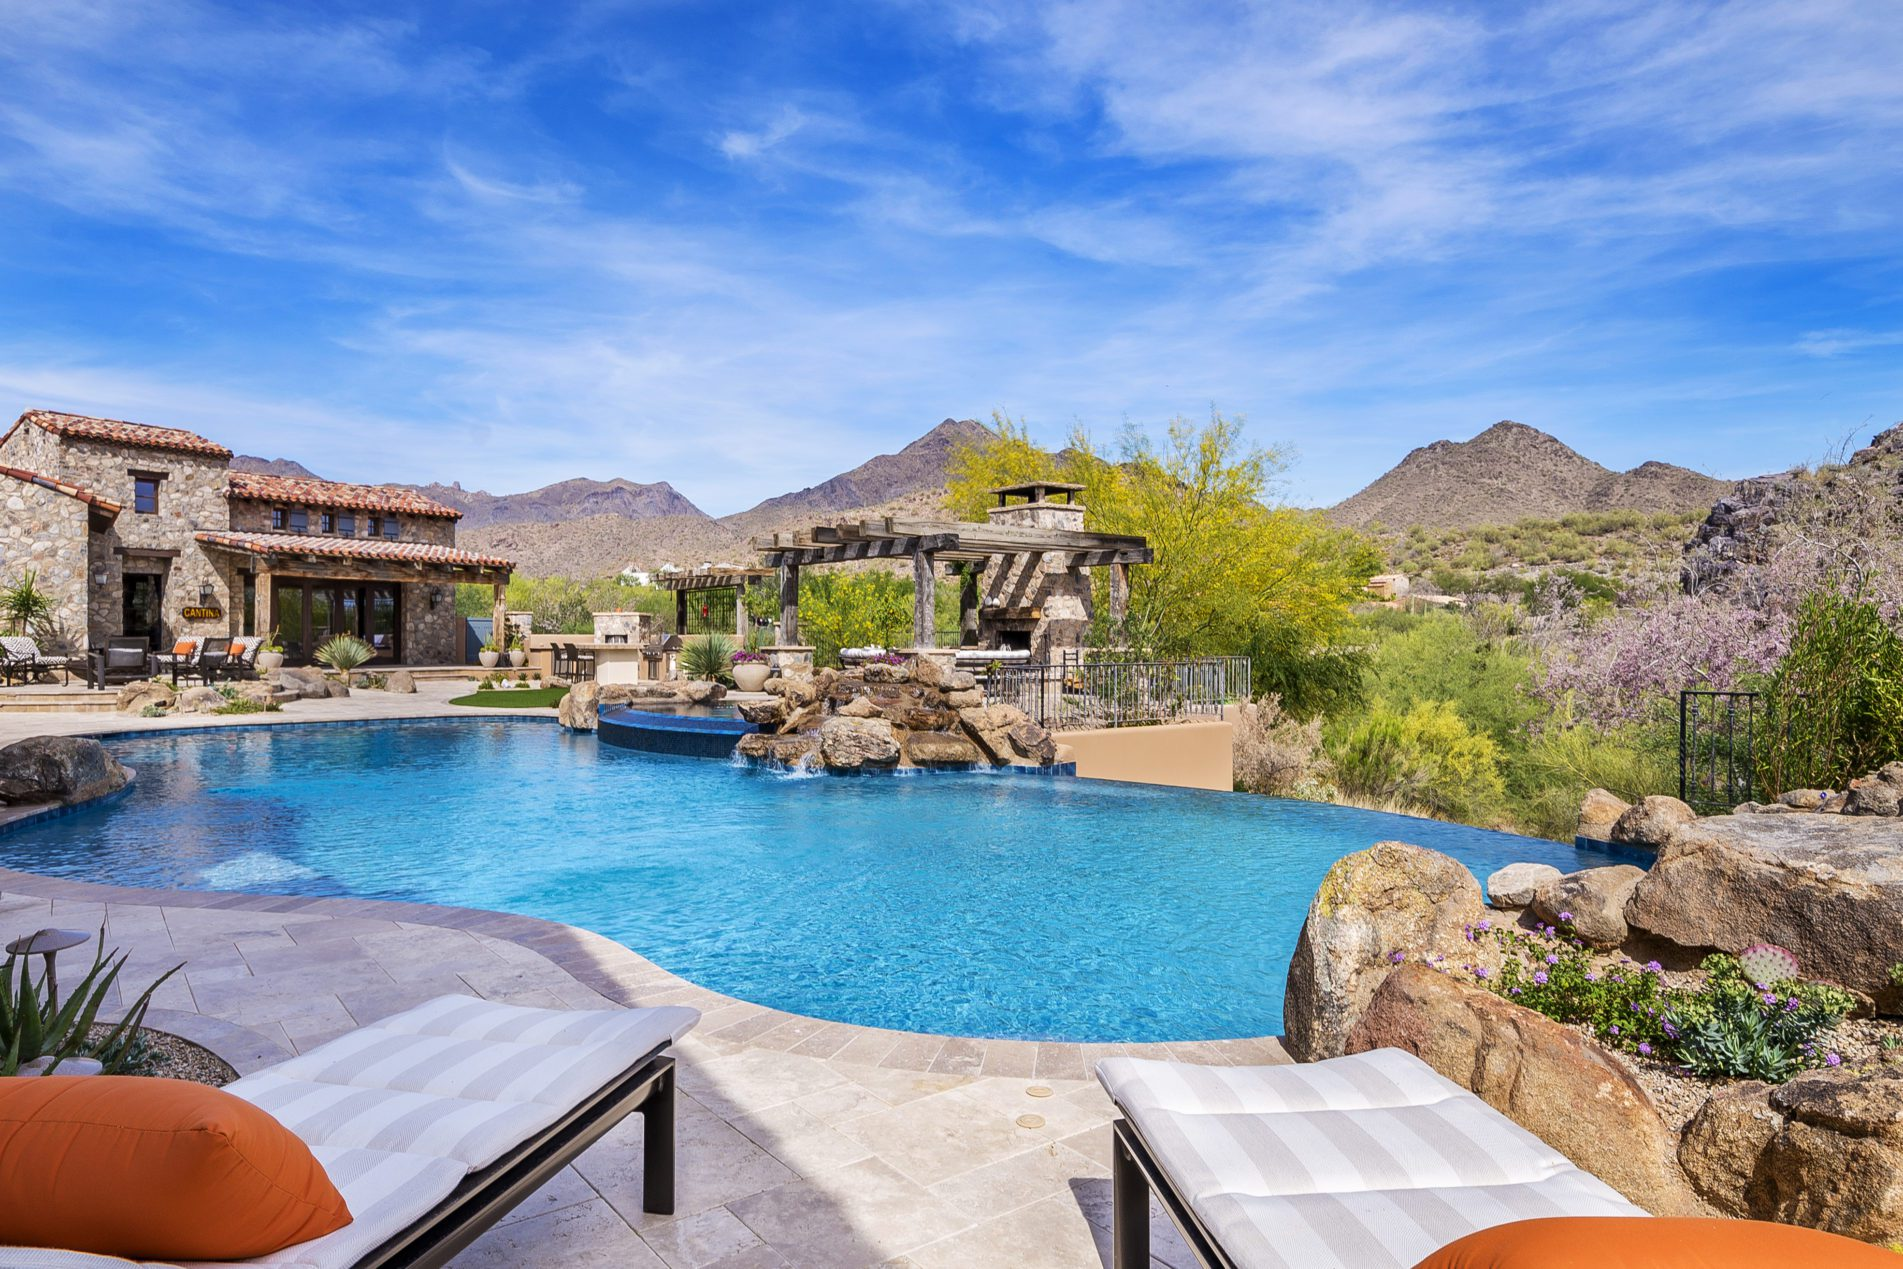 Budget For Your Pool & Backyard Project